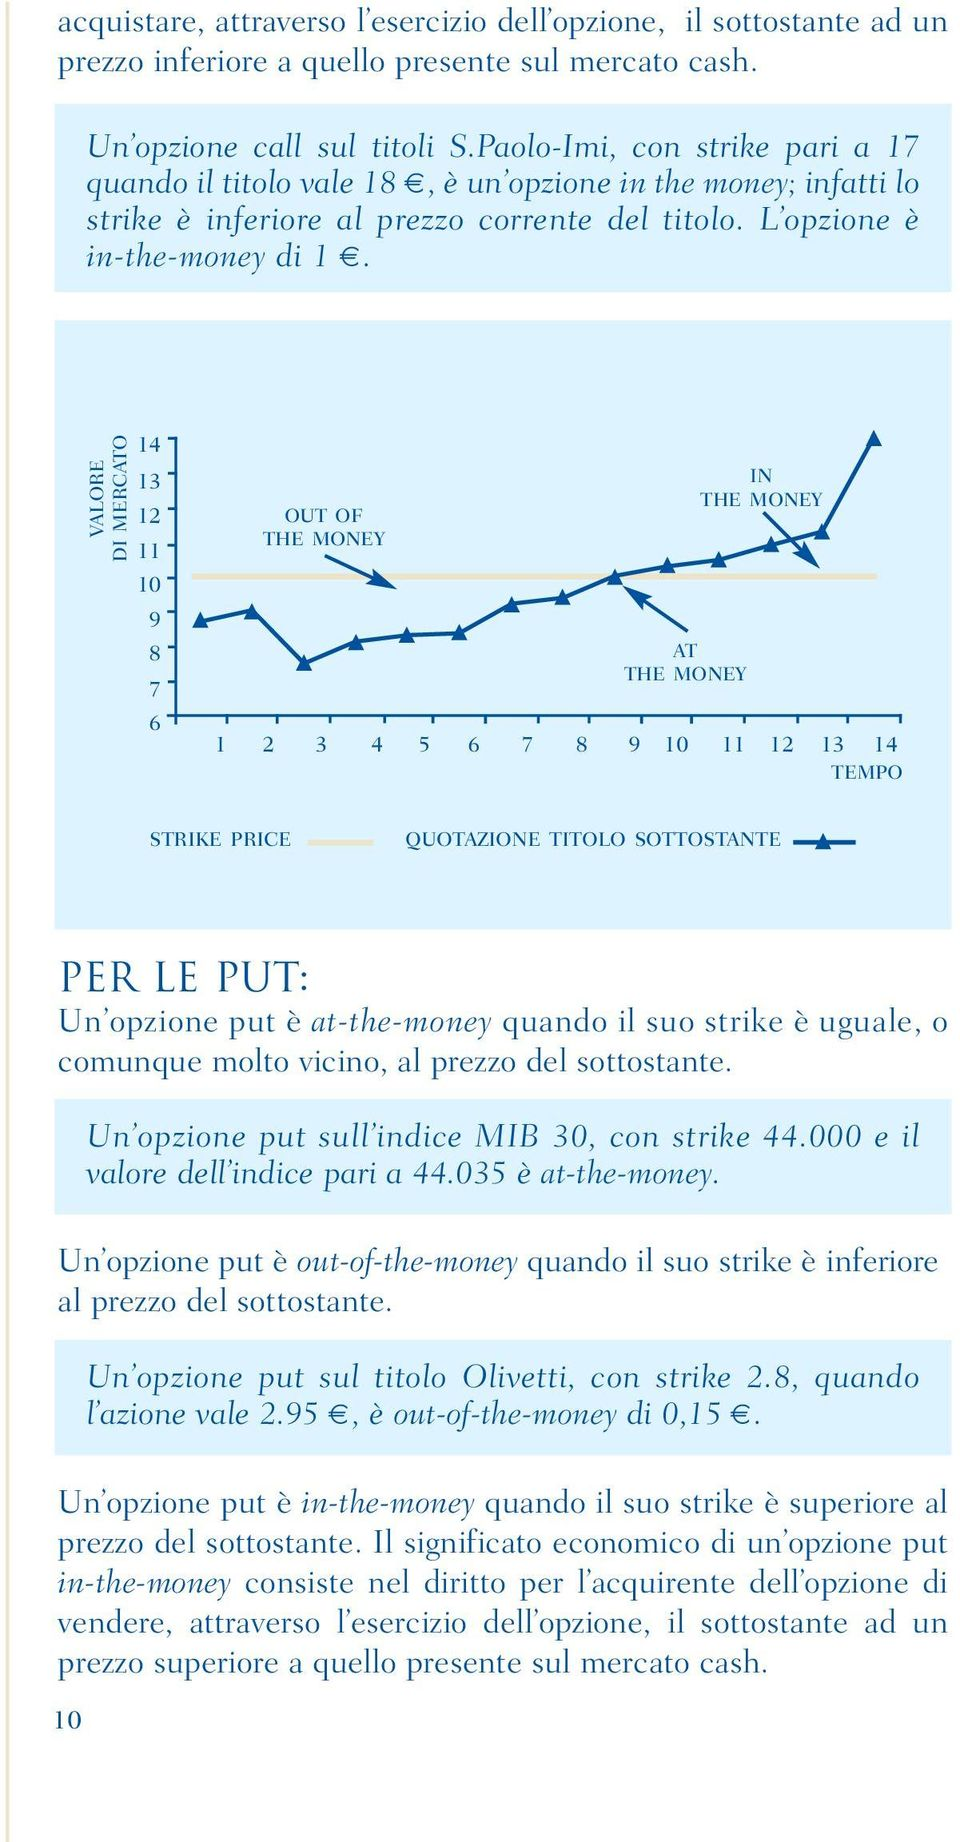 VALORE DI MERCATO 14 13 12 11 10 9 8 7 6 OUT OF THE MONEY AT THE MONEY IN THE MONEY 1 2 3 4 5 6 7 8 9 10 11 12 13 14 TEMPO STRIKE PRICE QUOTAZIONE TITOLO SOTTOSTANTE PER LE PUT: Un opzione put è